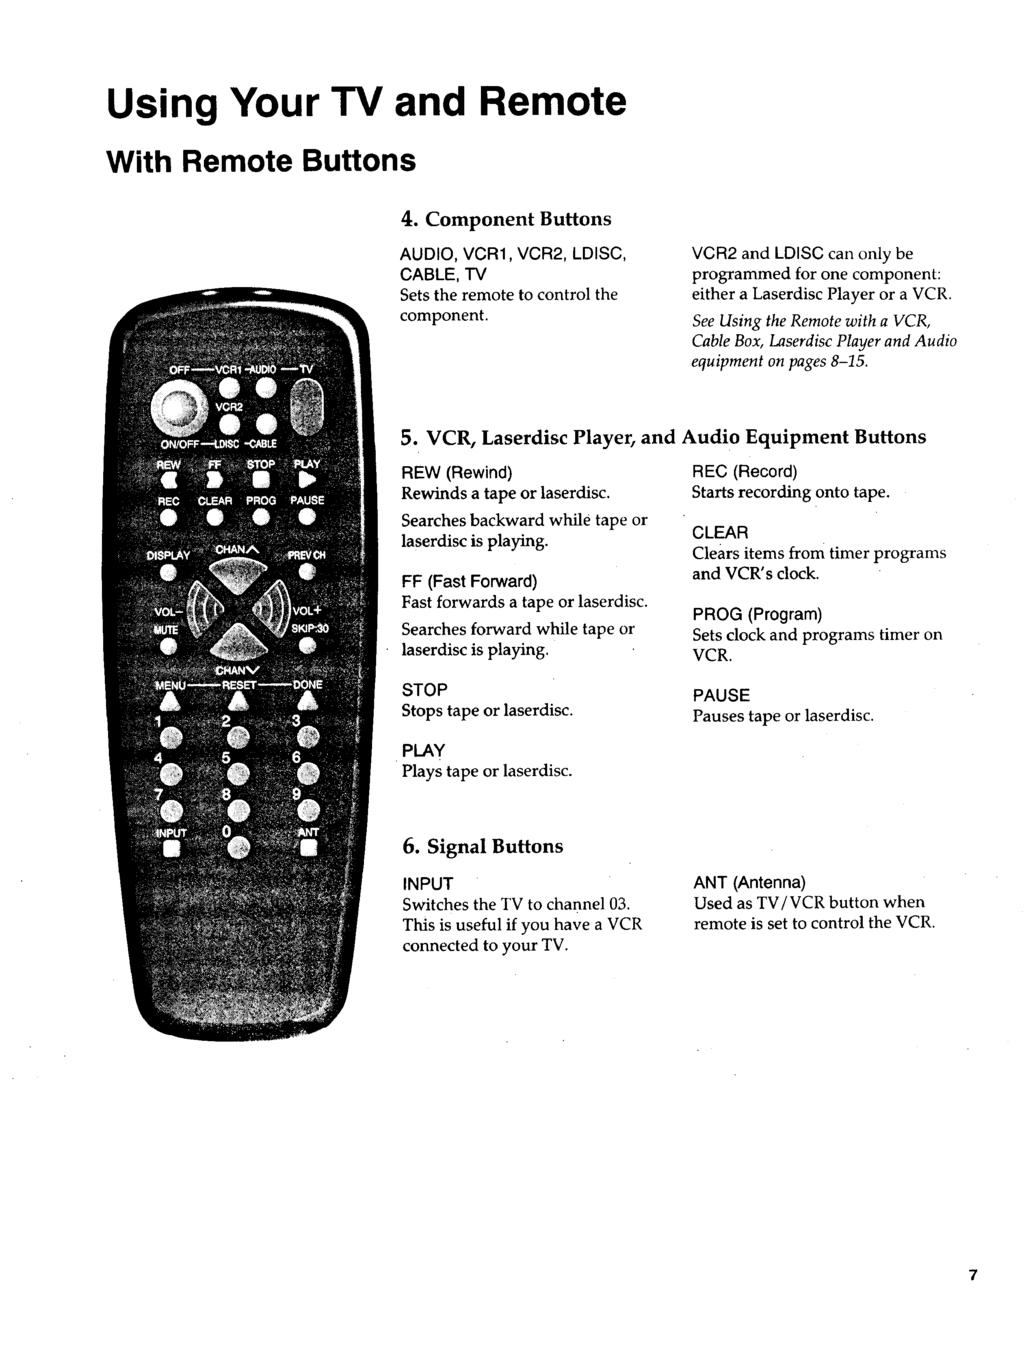 Using Your TV and Remote With Remote Buttons 4. Component Buttons AUDIO, VCR1, VCR2, LDISC, CABLE, TV Setsthe remote to control the component.